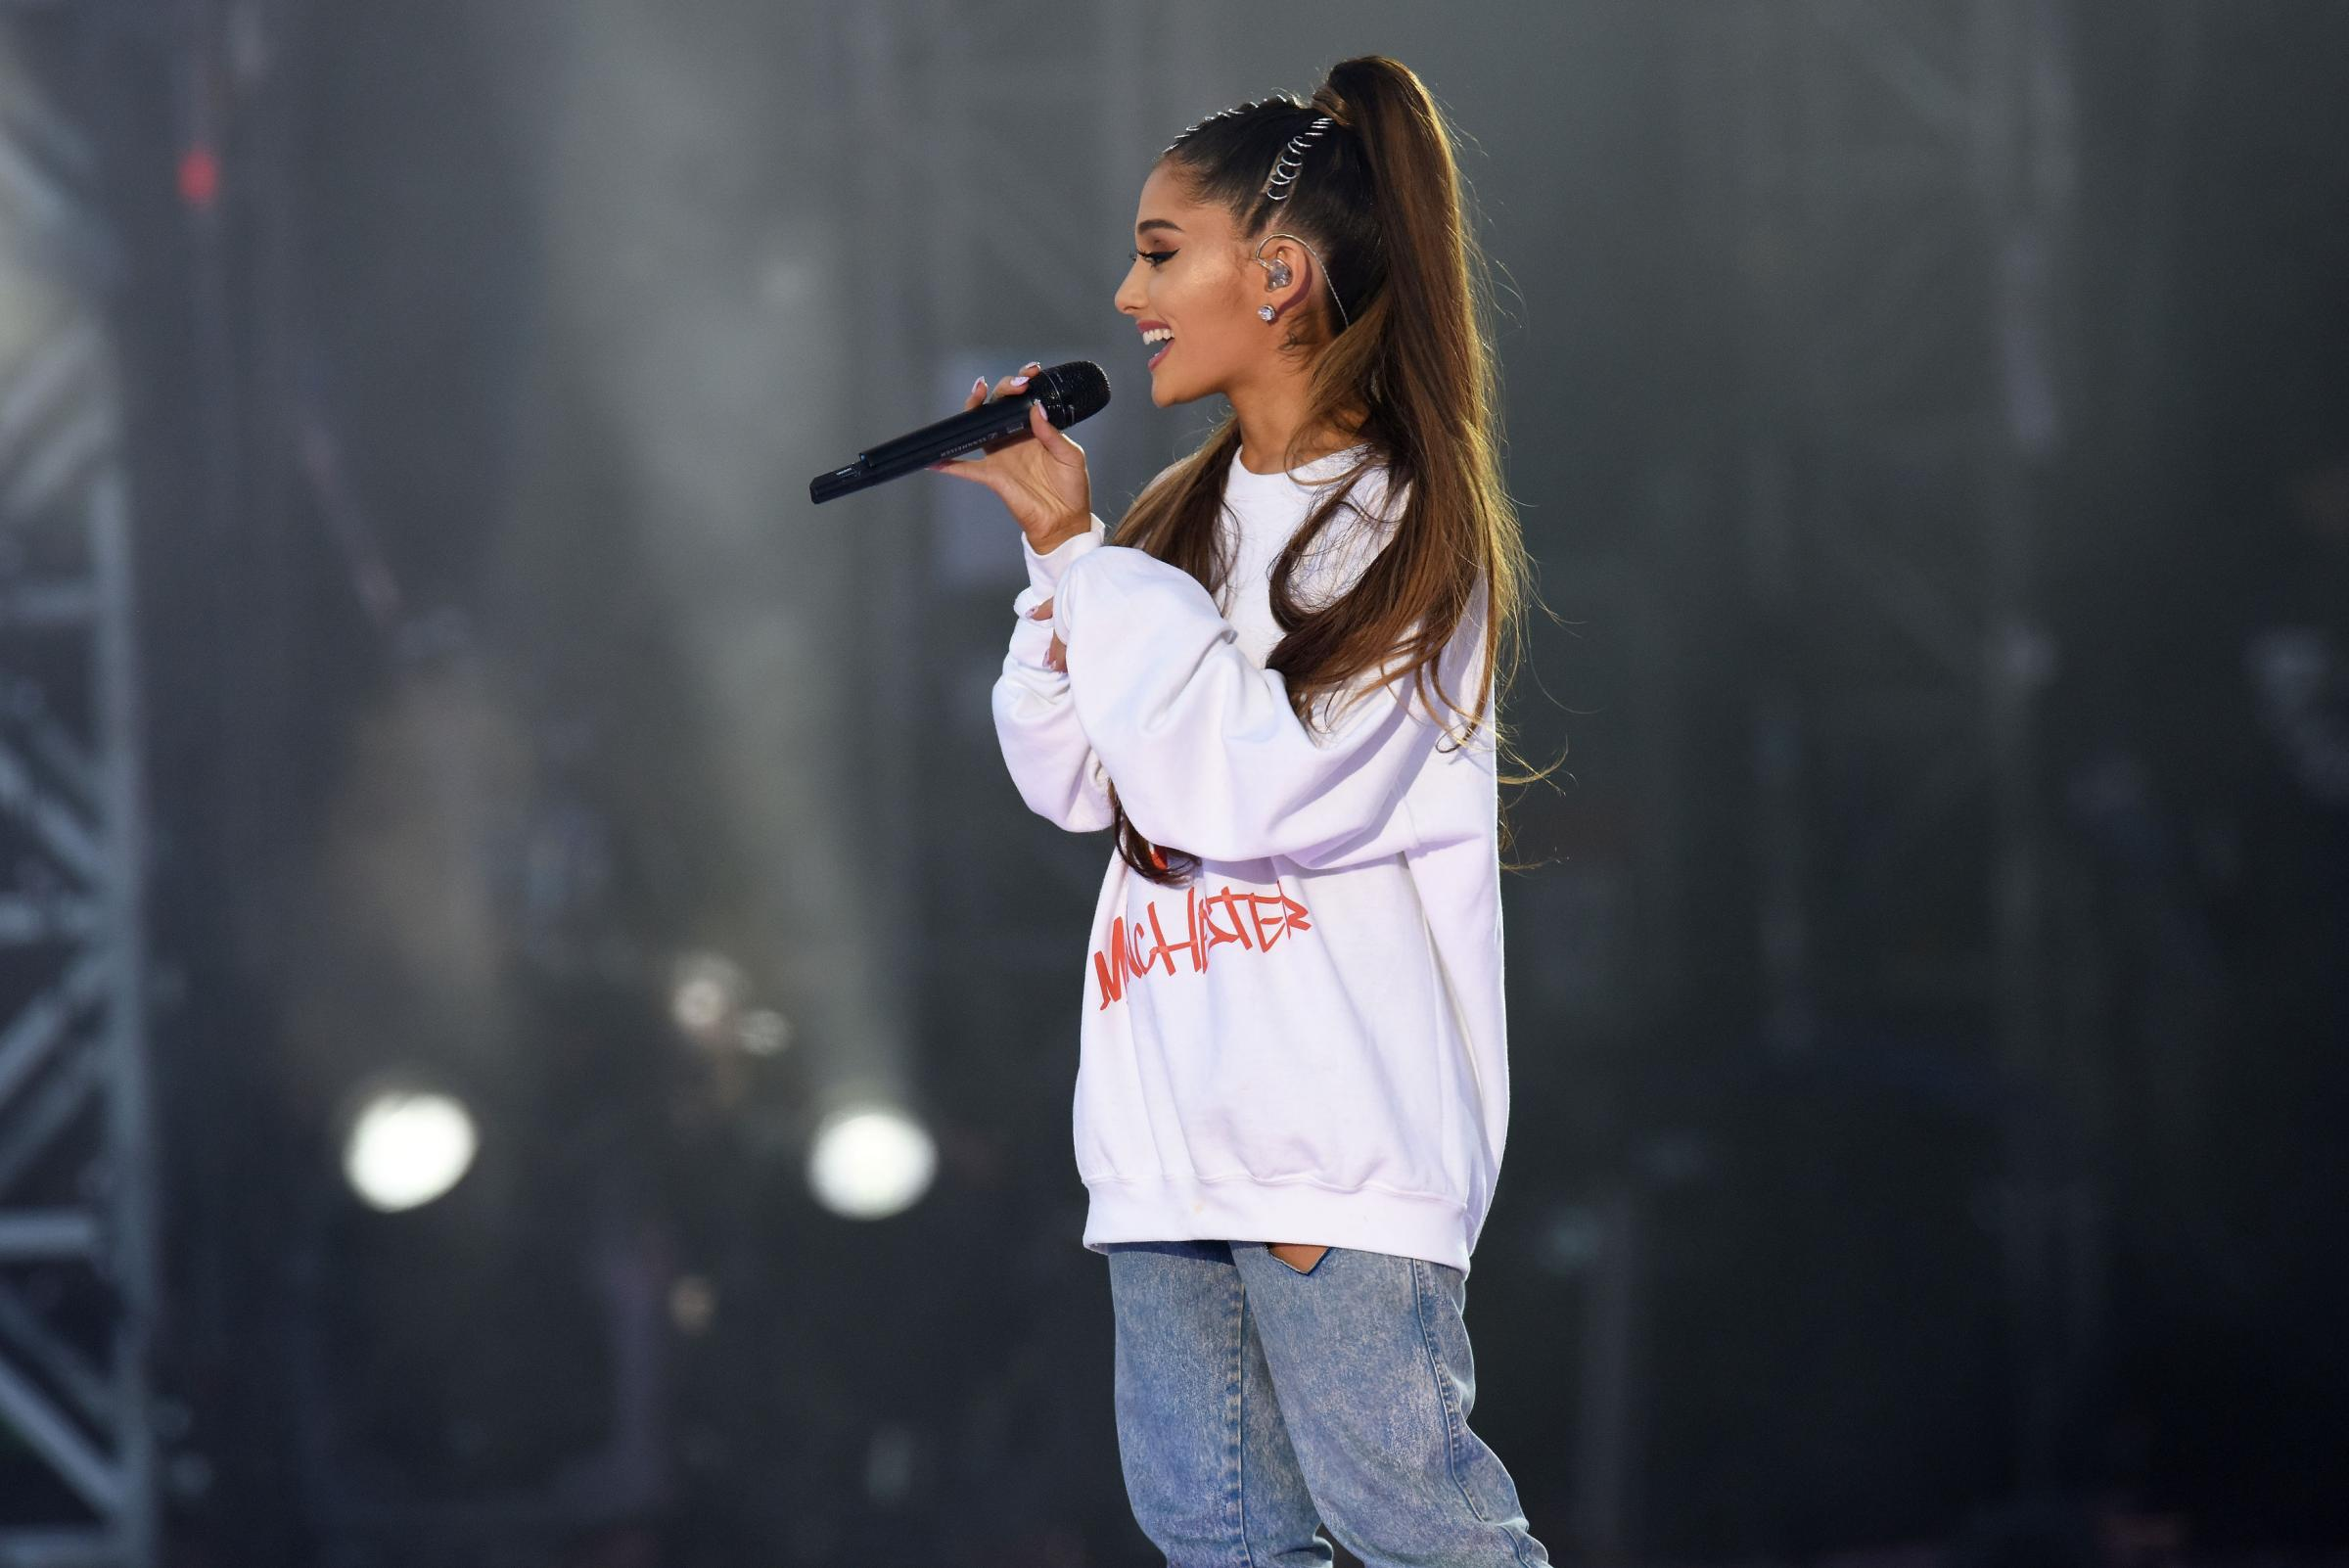 Ariana Grande performing during the One Love Manchester benefit concert for the victims of the Manchester Arena terror attack. Picture: One Love Manchester